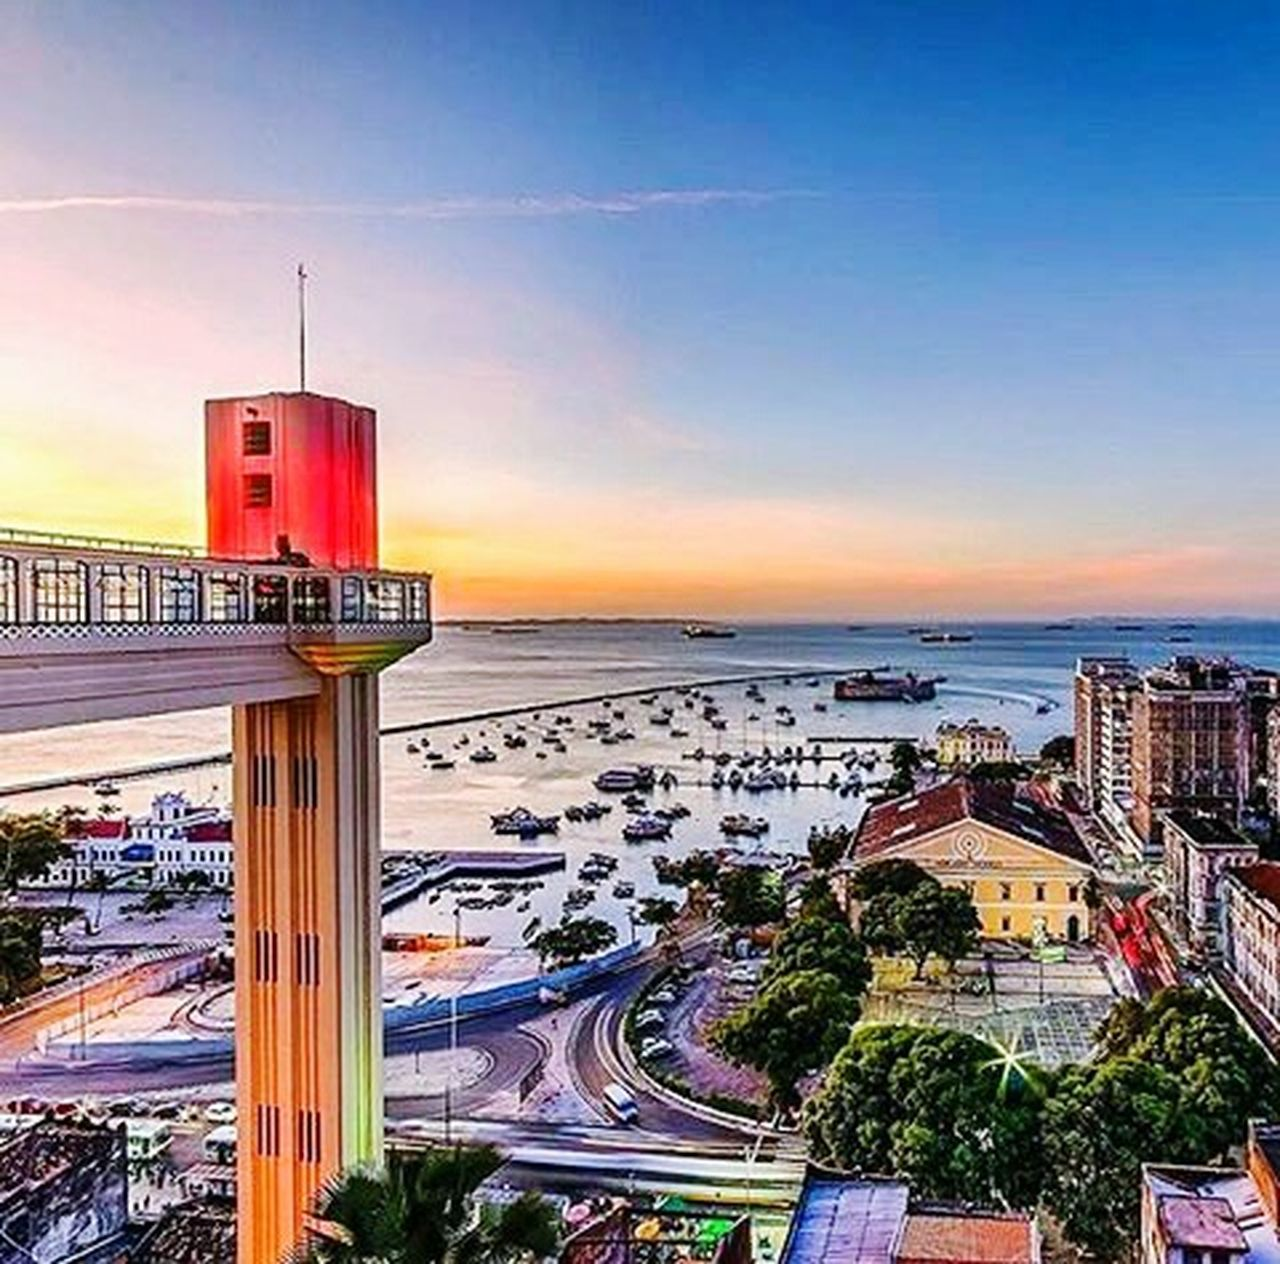 architecture, building exterior, built structure, travel destinations, sunset, city, street, outdoors, transportation, road, sky, horizon over water, cityscape, beach, blue, no people, day, urban skyline